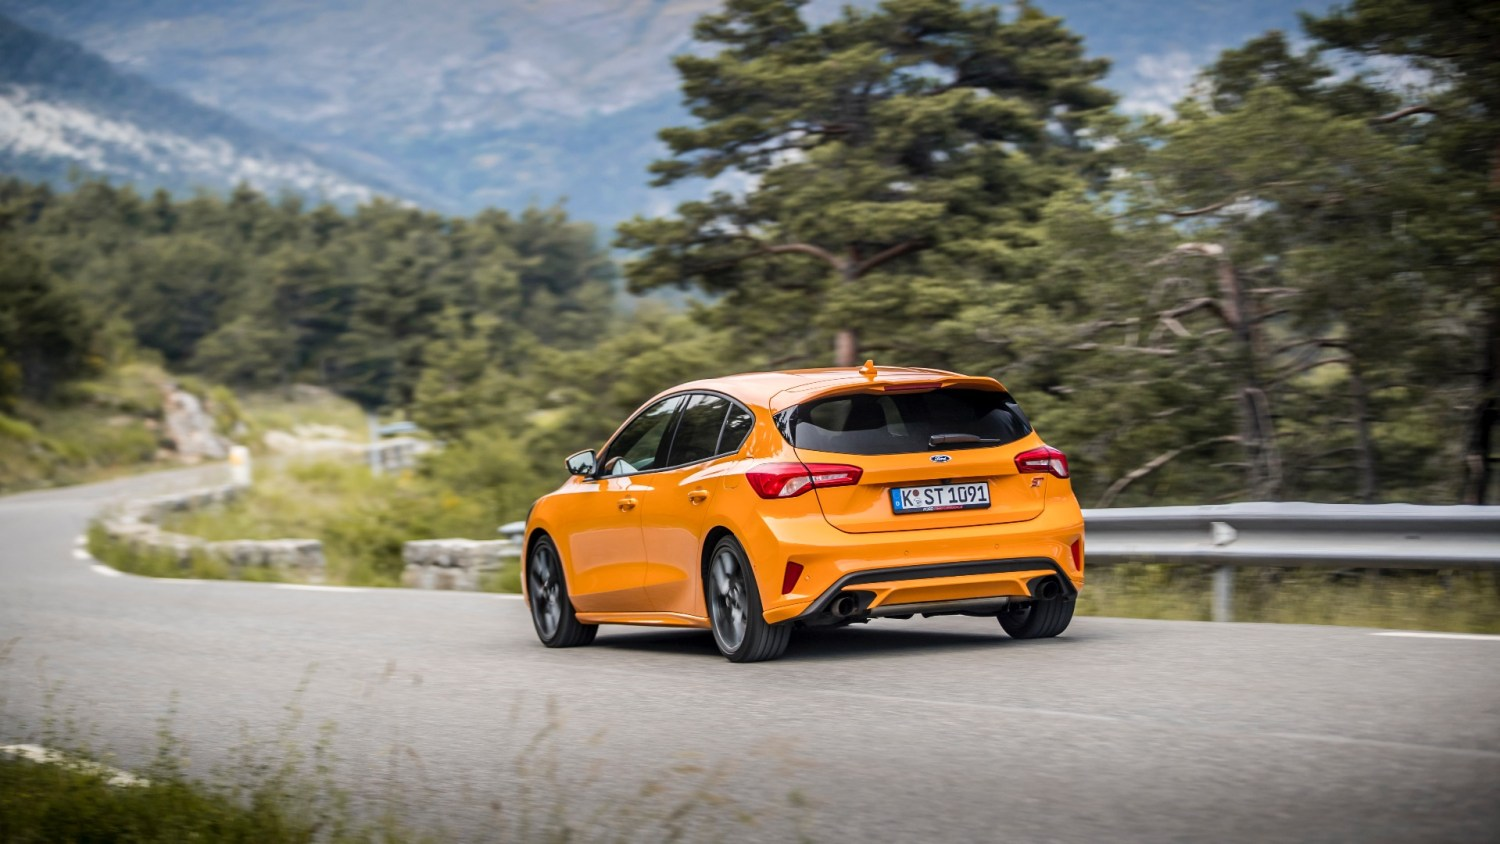 2019 Ford Focus St Review The Future S Bright Motoring Research